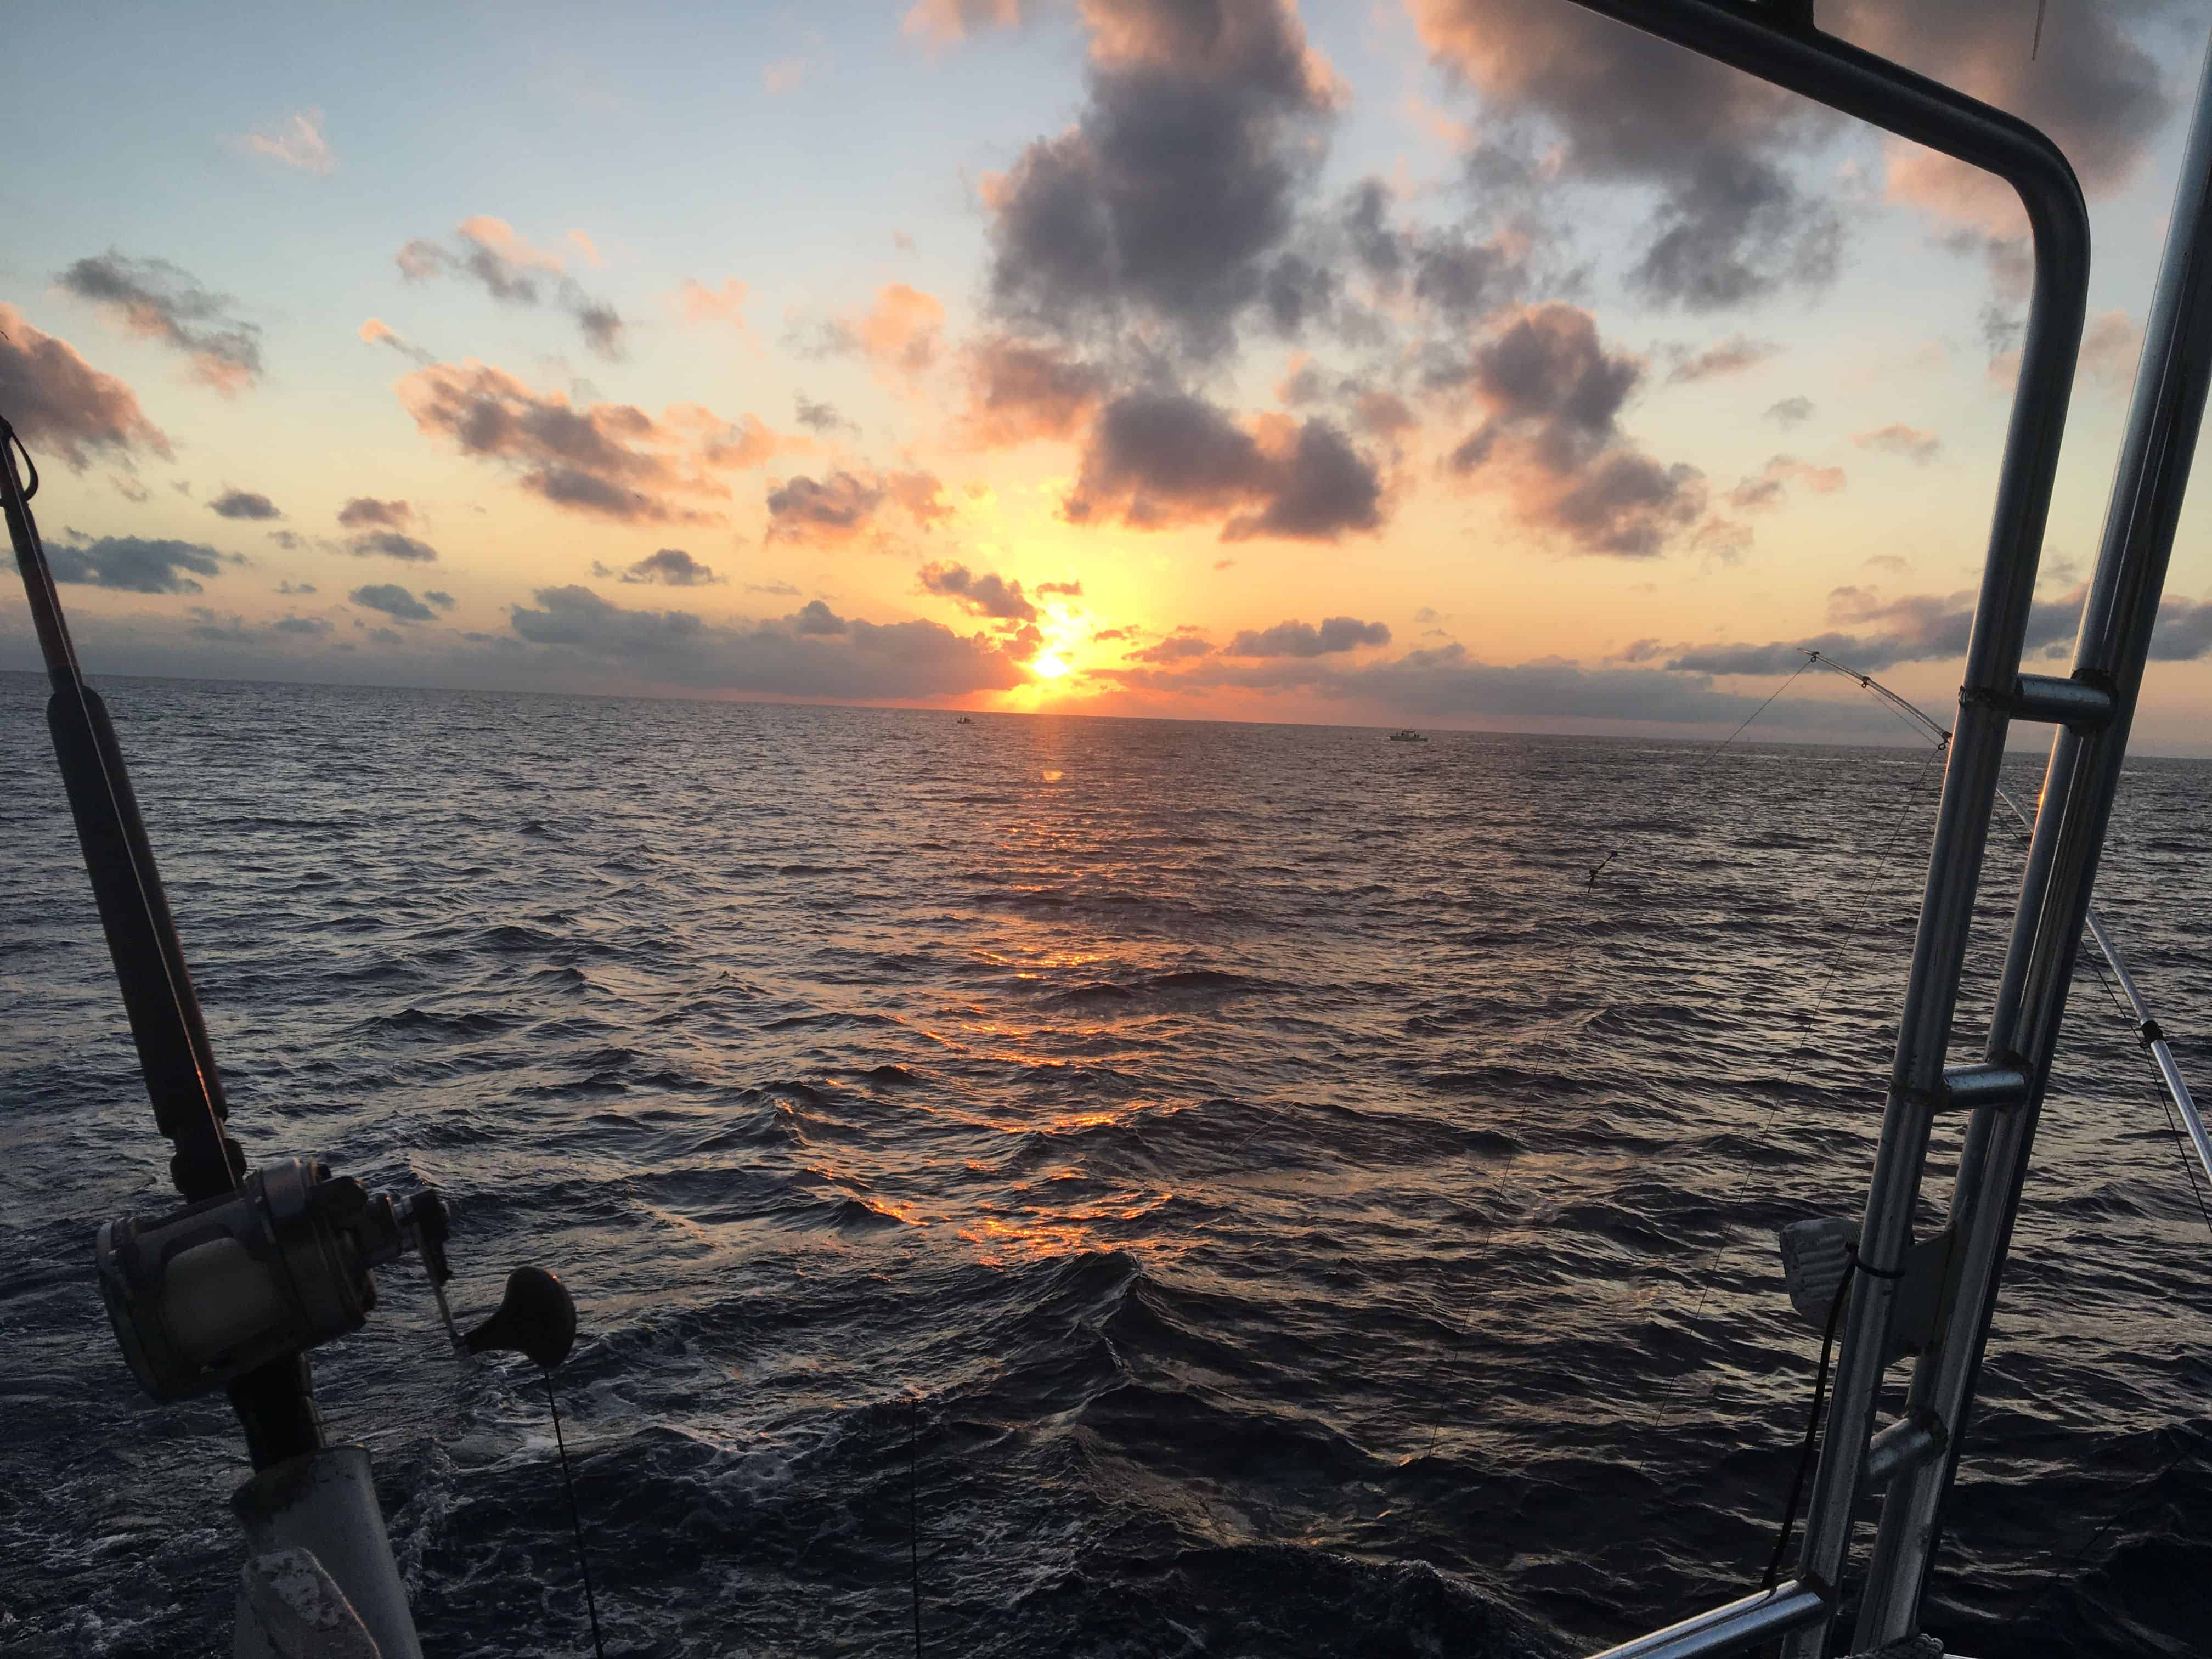 Sunsett at the end of 2019 in Key West fishing on Charter boat Southbound